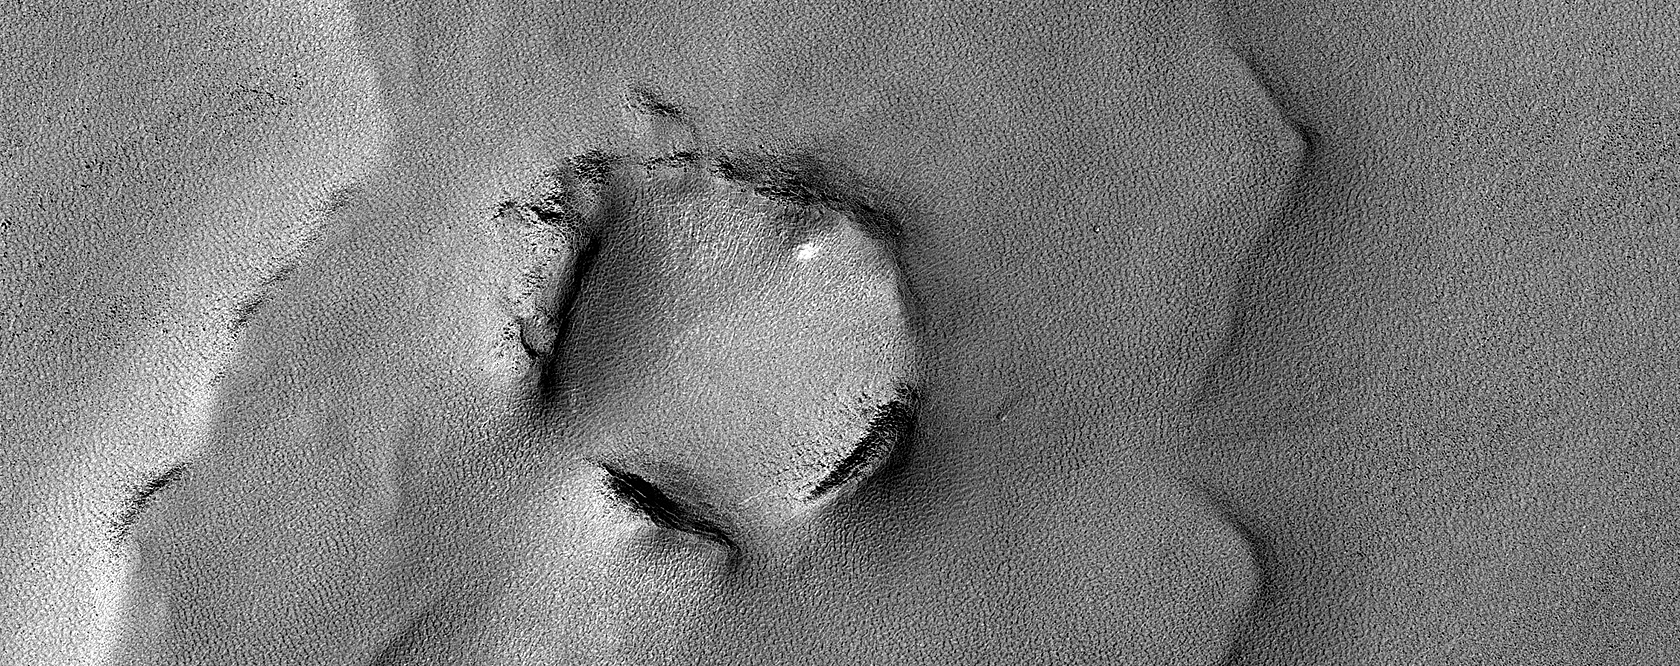 Crater with Asymmetric Ejecta Blanket Southeast of Hellas Planitia